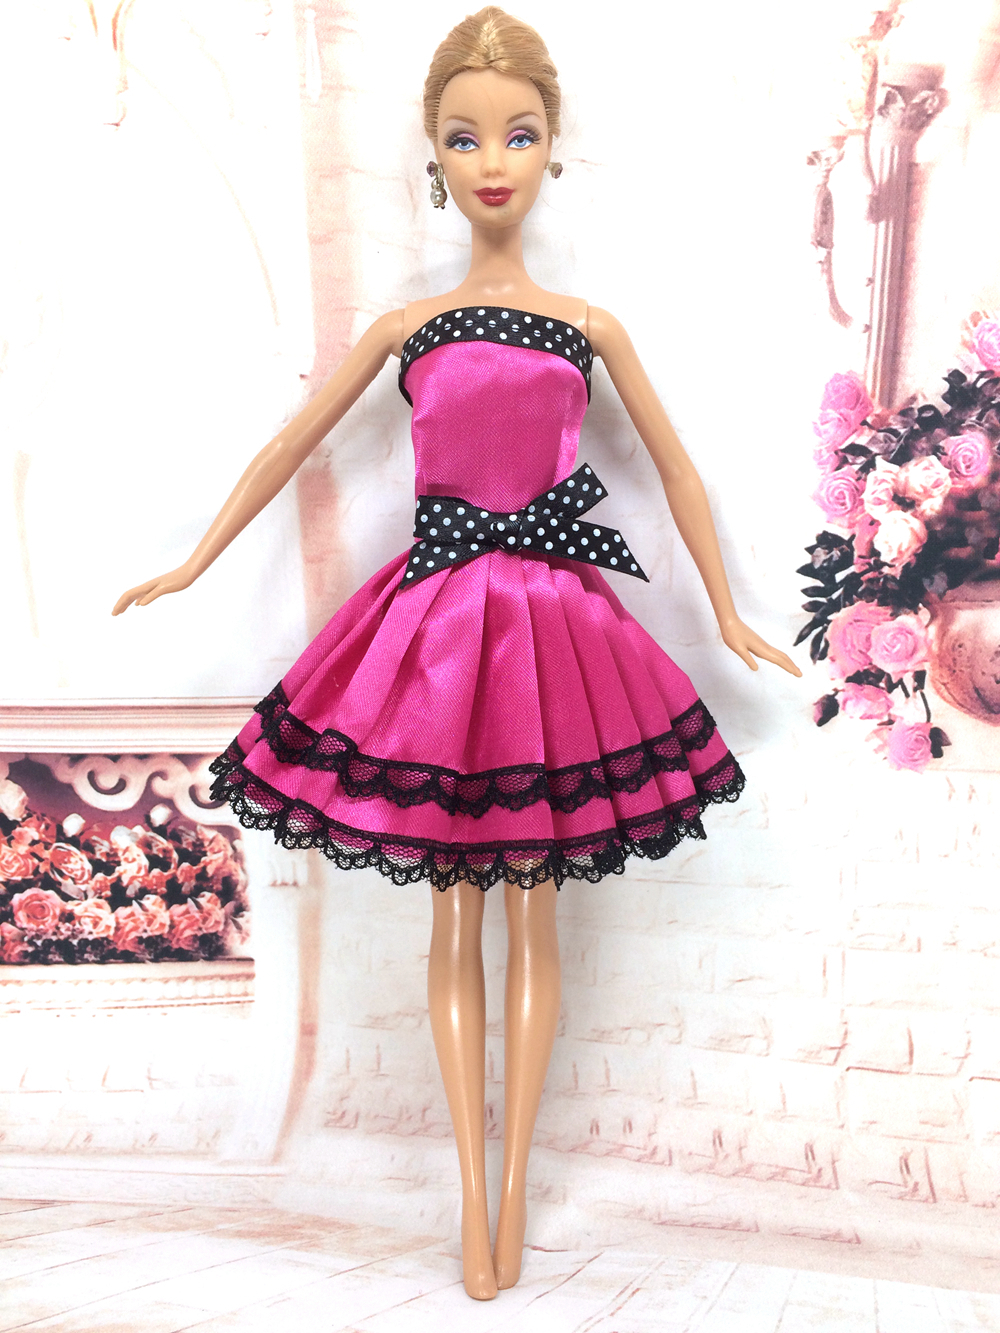 NK 2018 Newest Doll Dress Beautiful Handmade Party ClothesTop Fashion Dress For Barbie Noble Doll Best Child Girls'Gift 056A